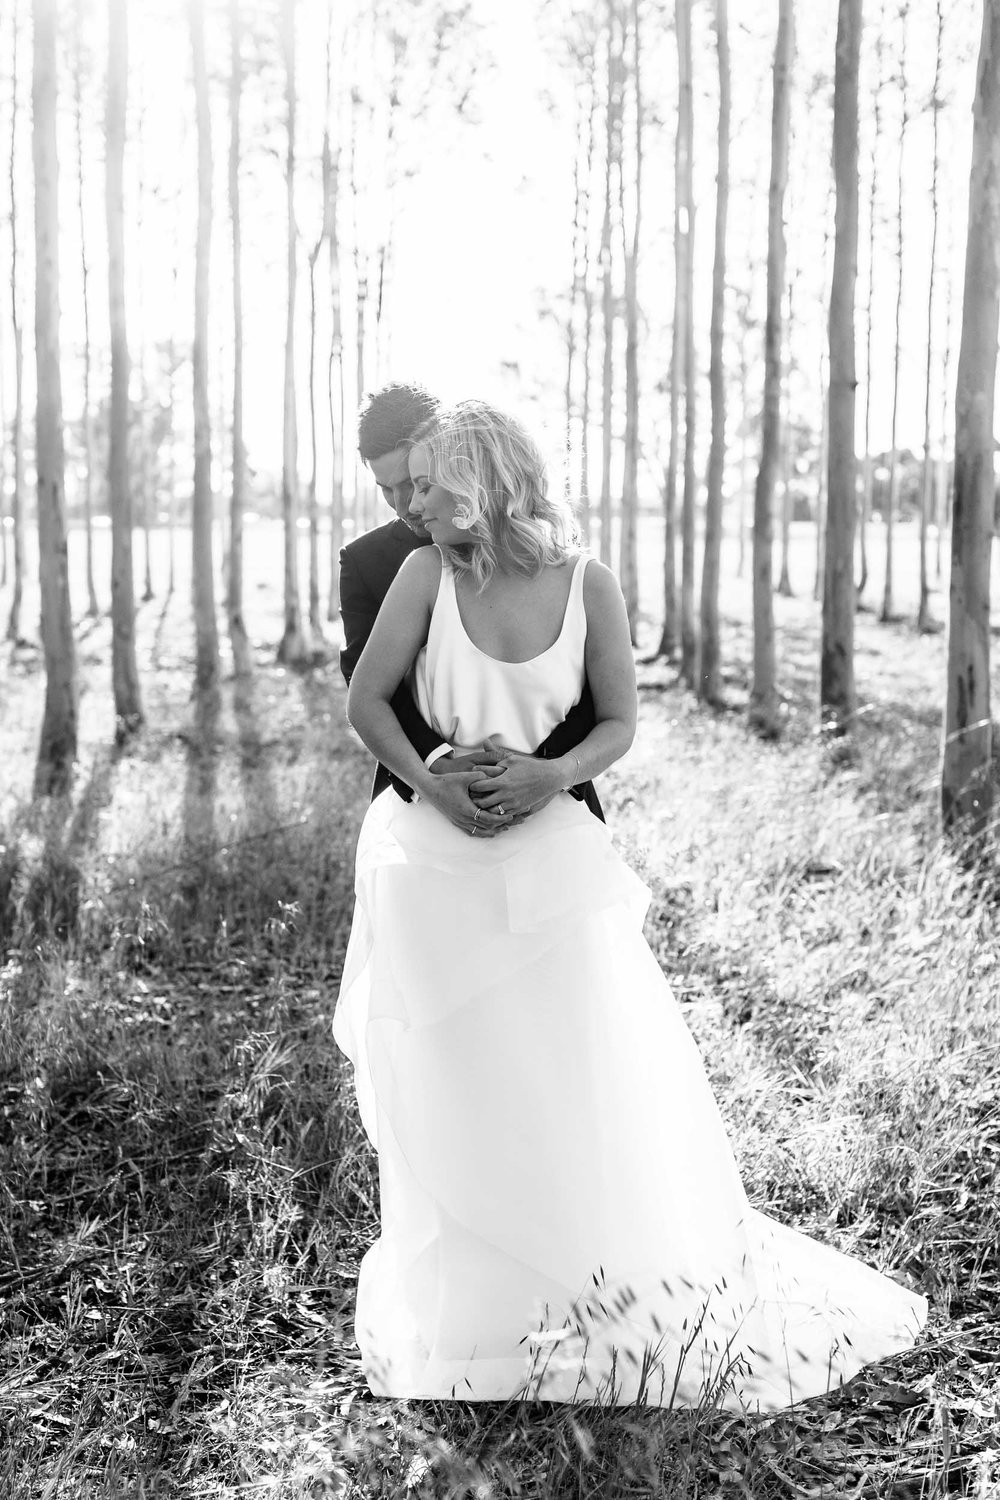 Kas-Richards-Wedding-Photographer-Country-Winery-Wedding-One-Day-Bridal-Gown-56.jpg